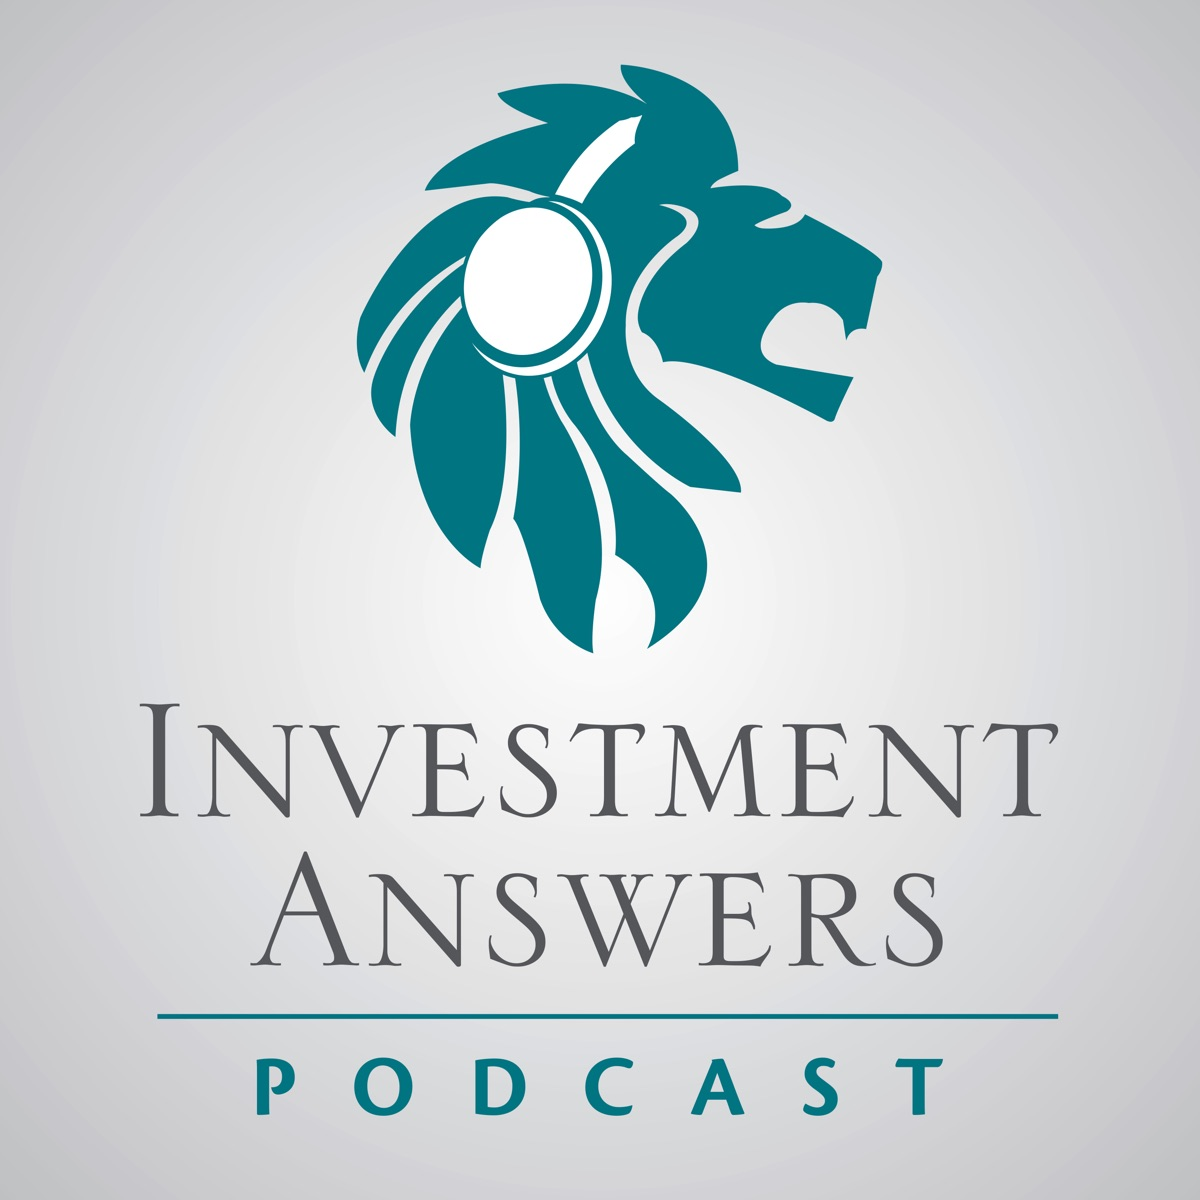 Investment Answers Podcast